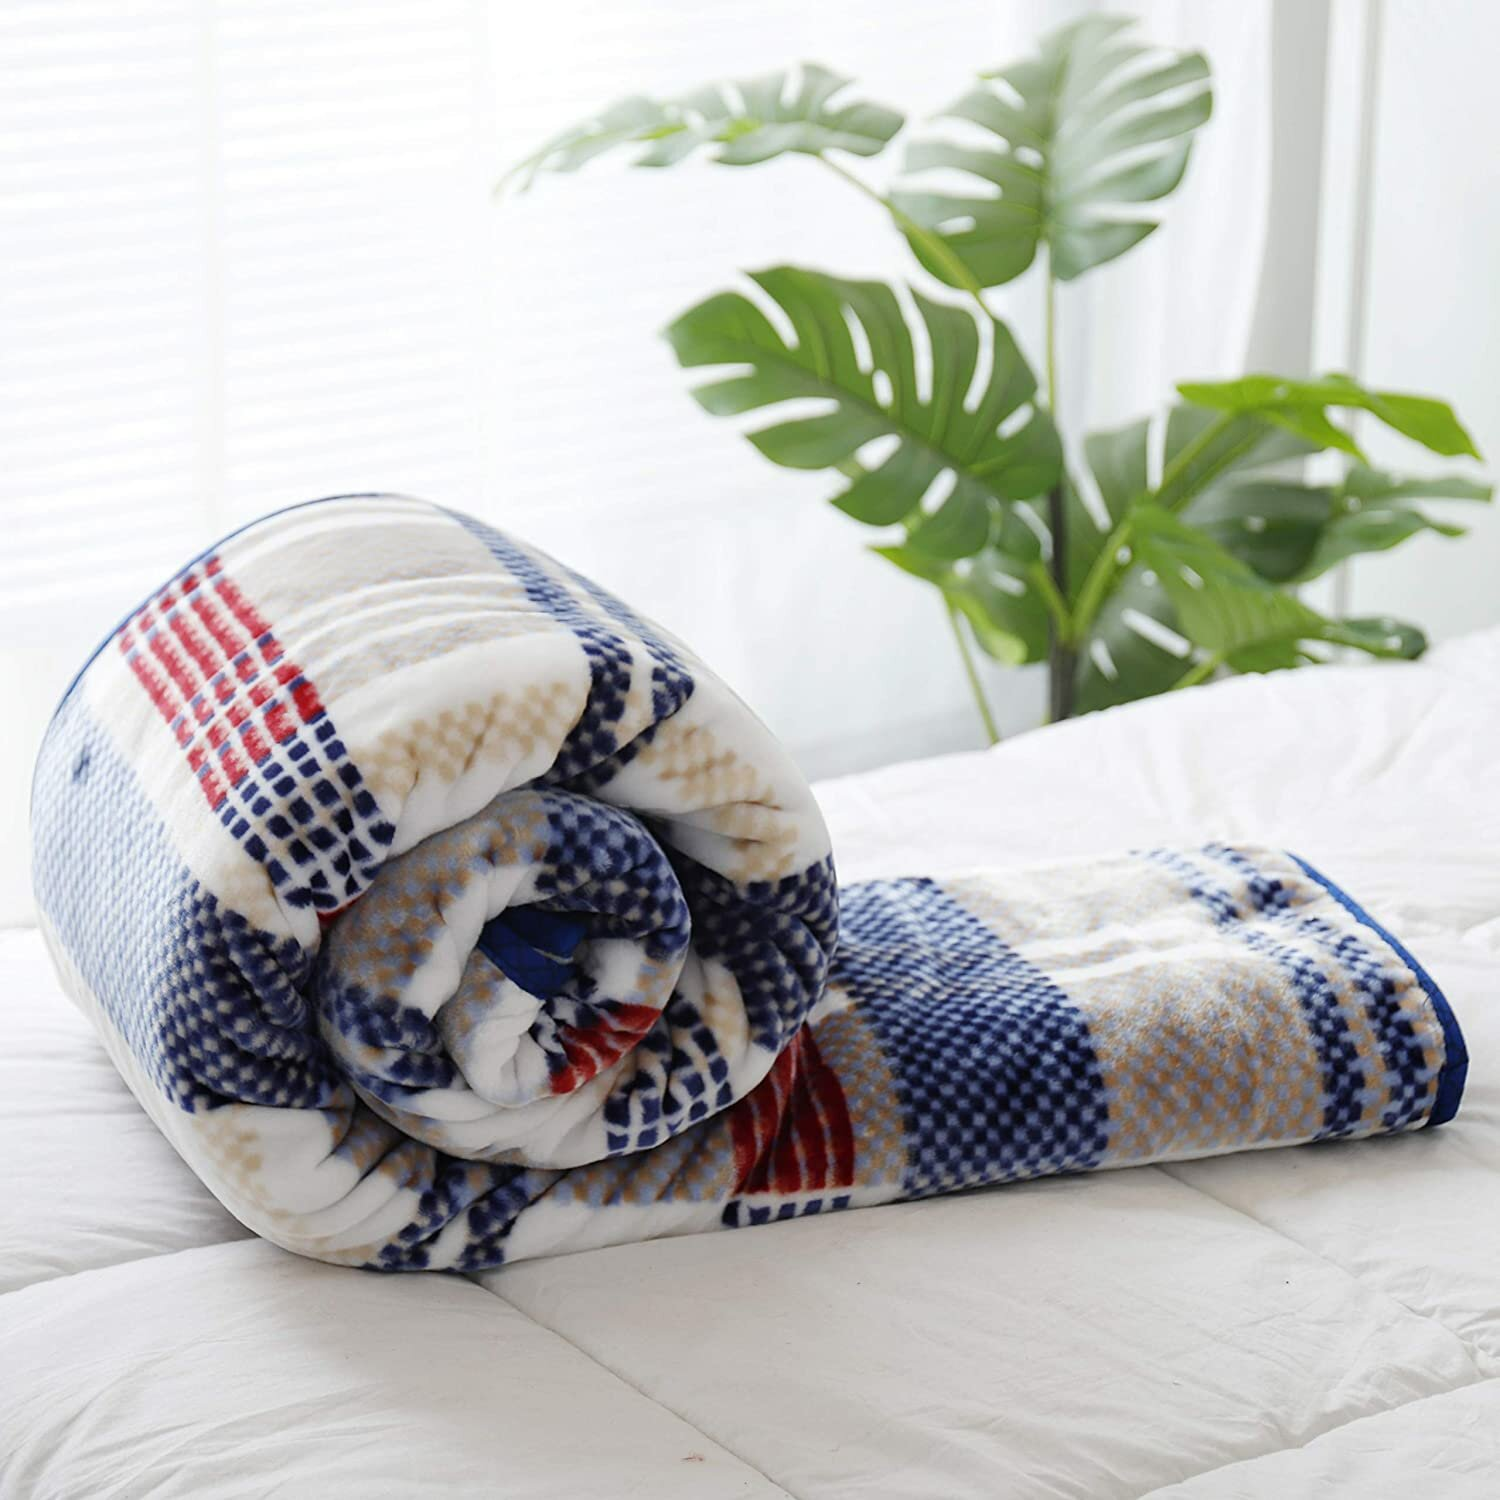 Jcp Hometex Inc Hiyoko Cloudy Dreamy Warm Blanket Wayfair